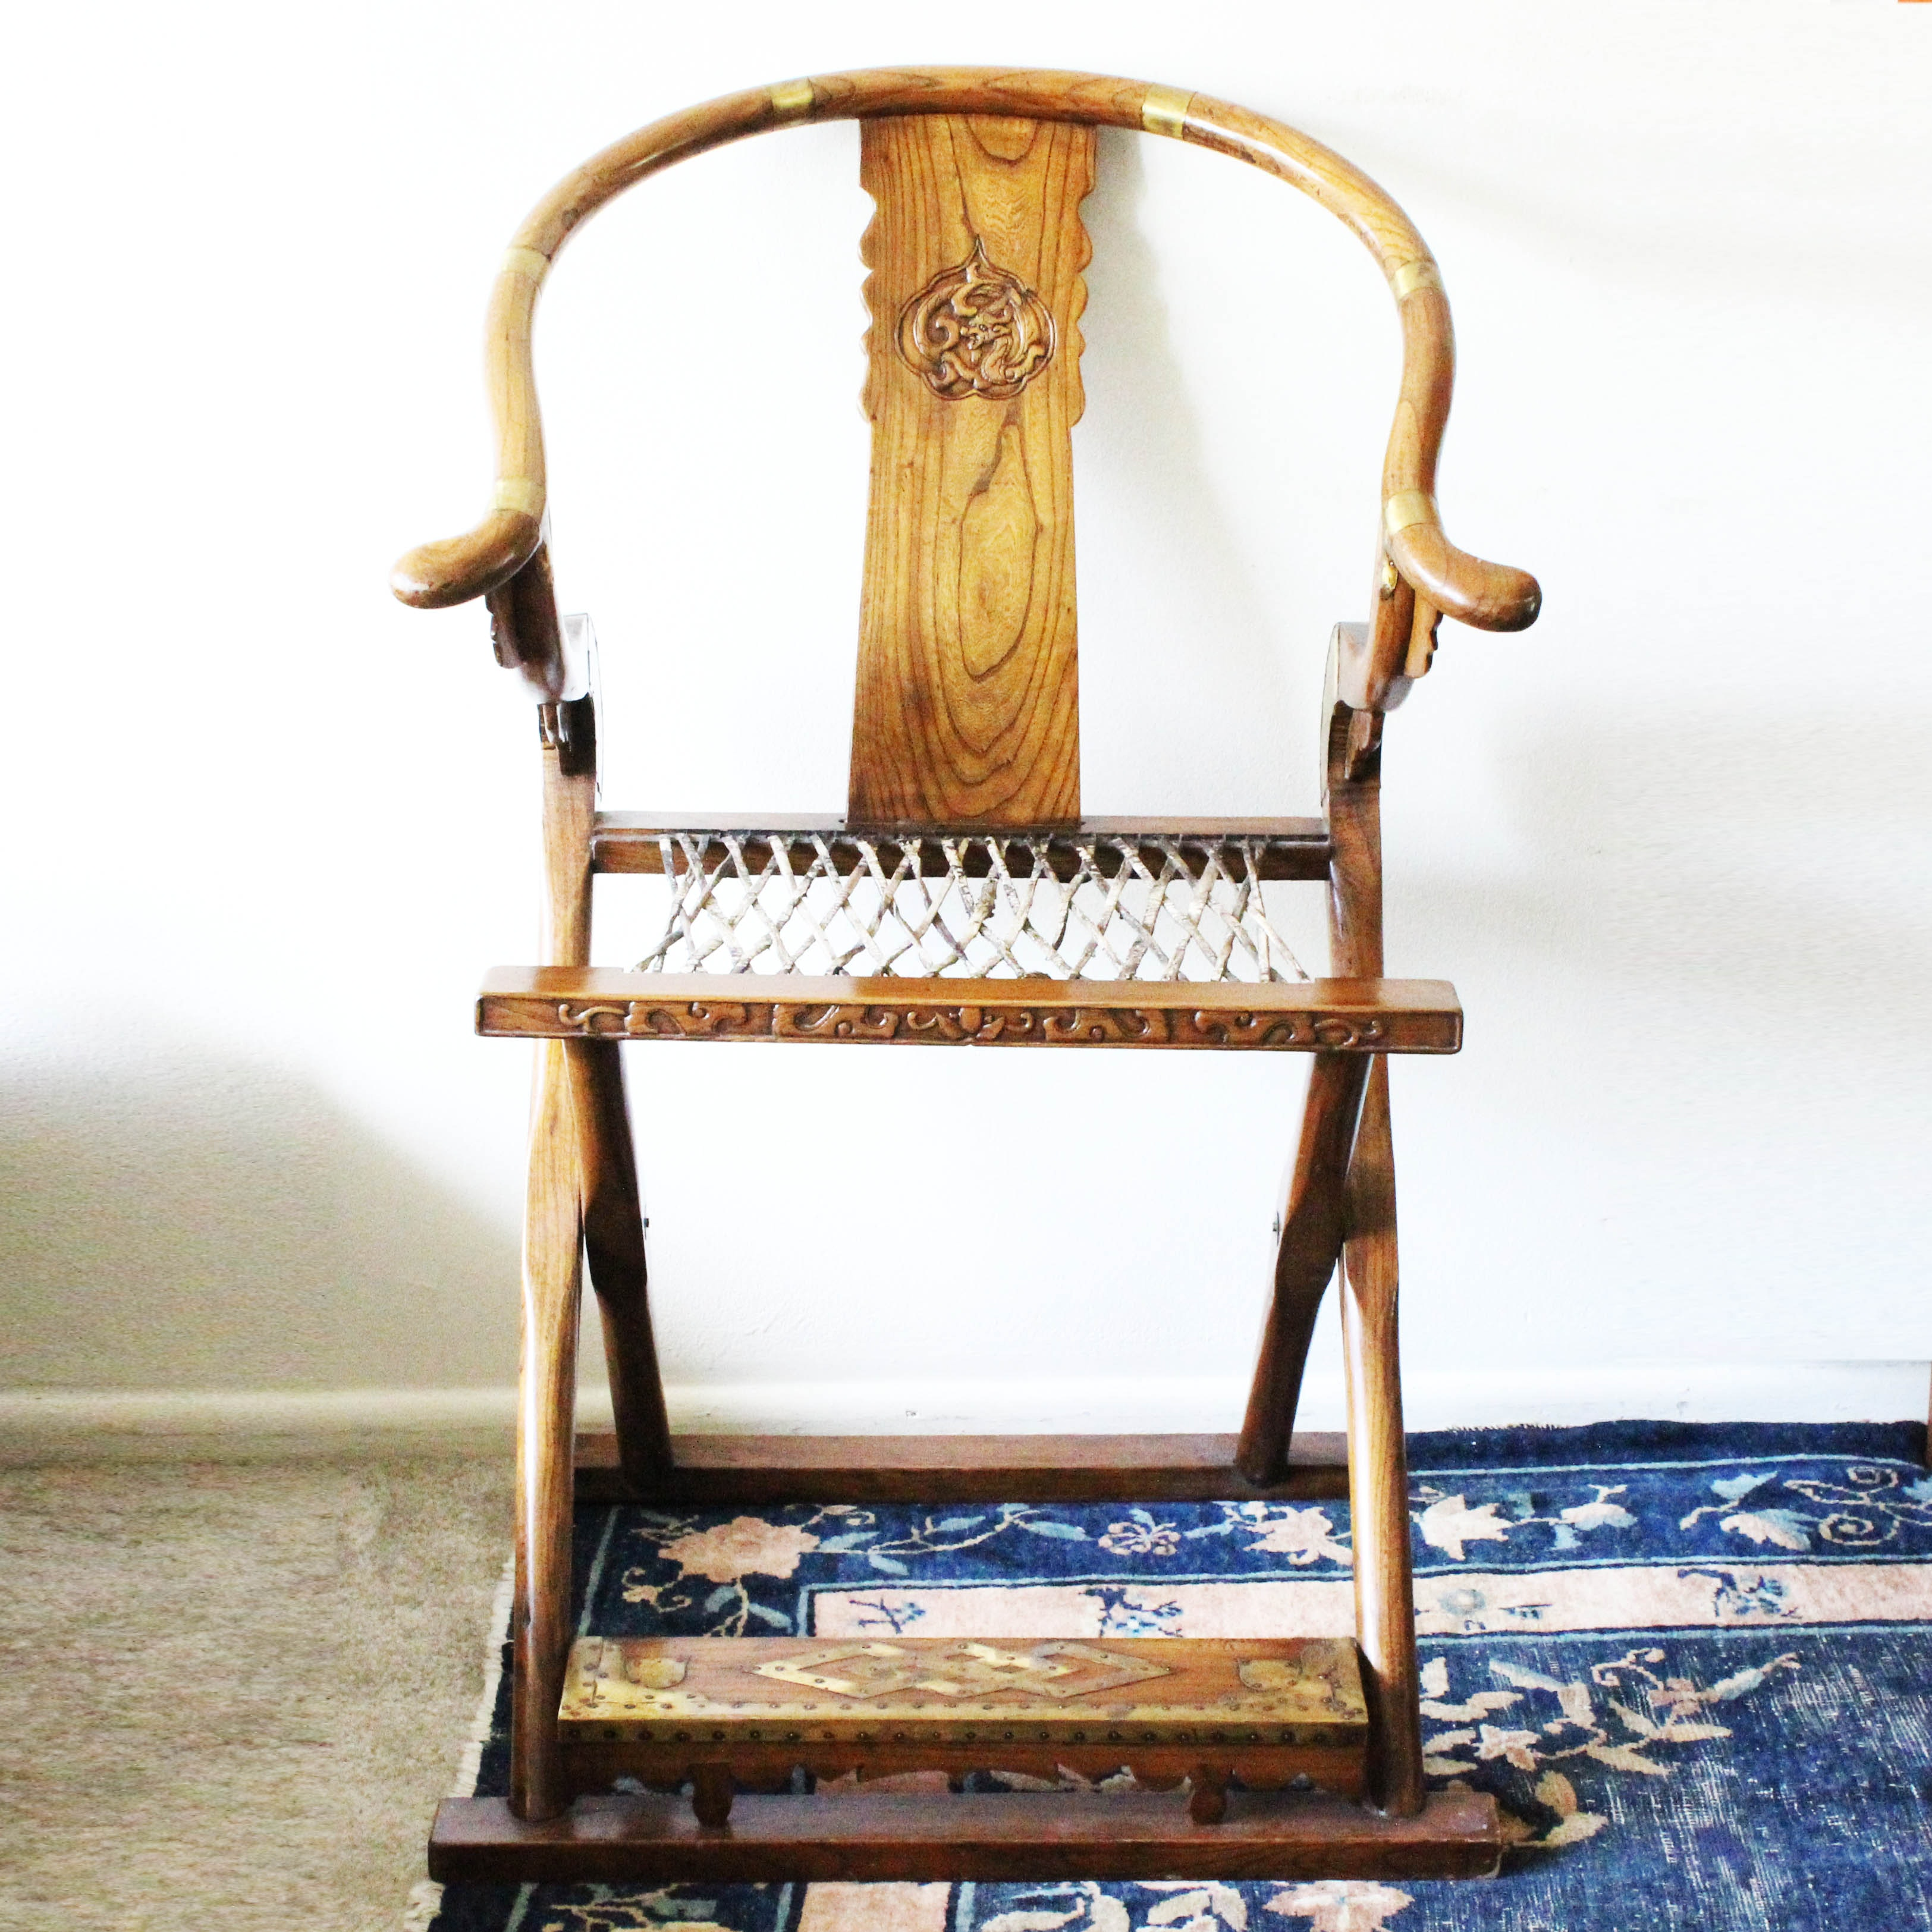 Chinese Ming dynasty hardwood folding chair, dragon craved symbol